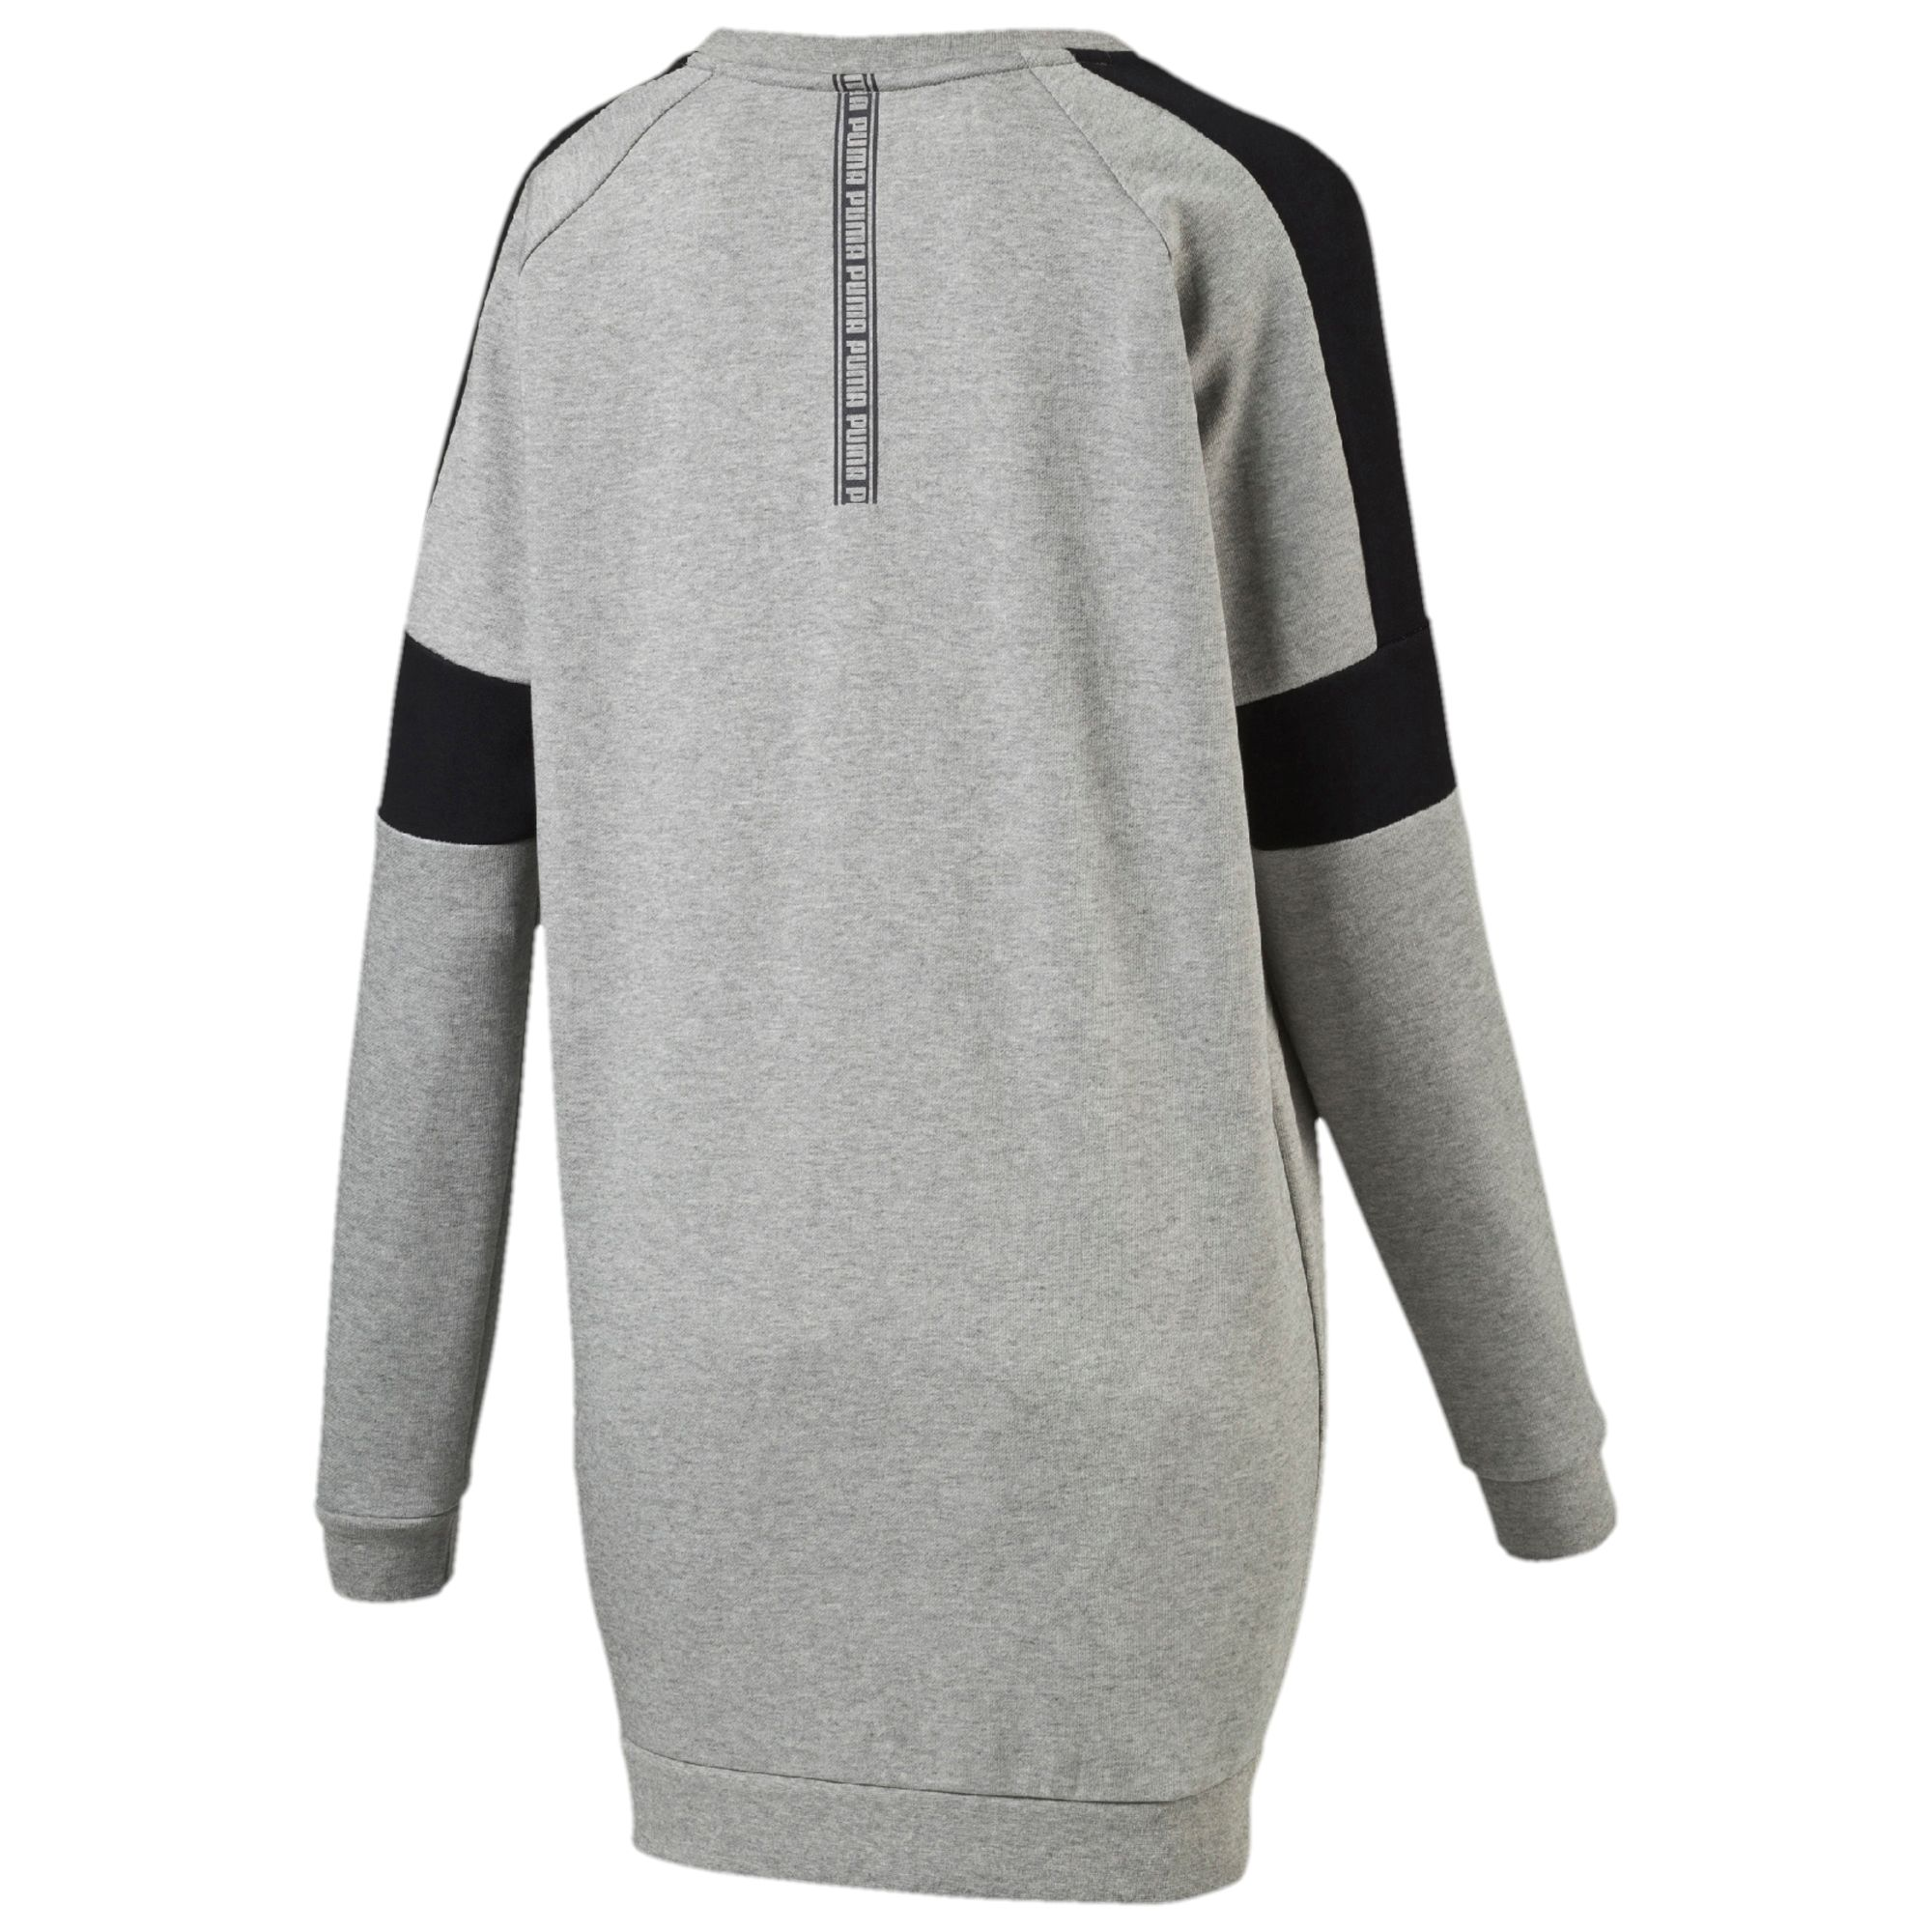 puma evolution sweatshirt kleid bekleidung kleid evolution damen neu ebay. Black Bedroom Furniture Sets. Home Design Ideas